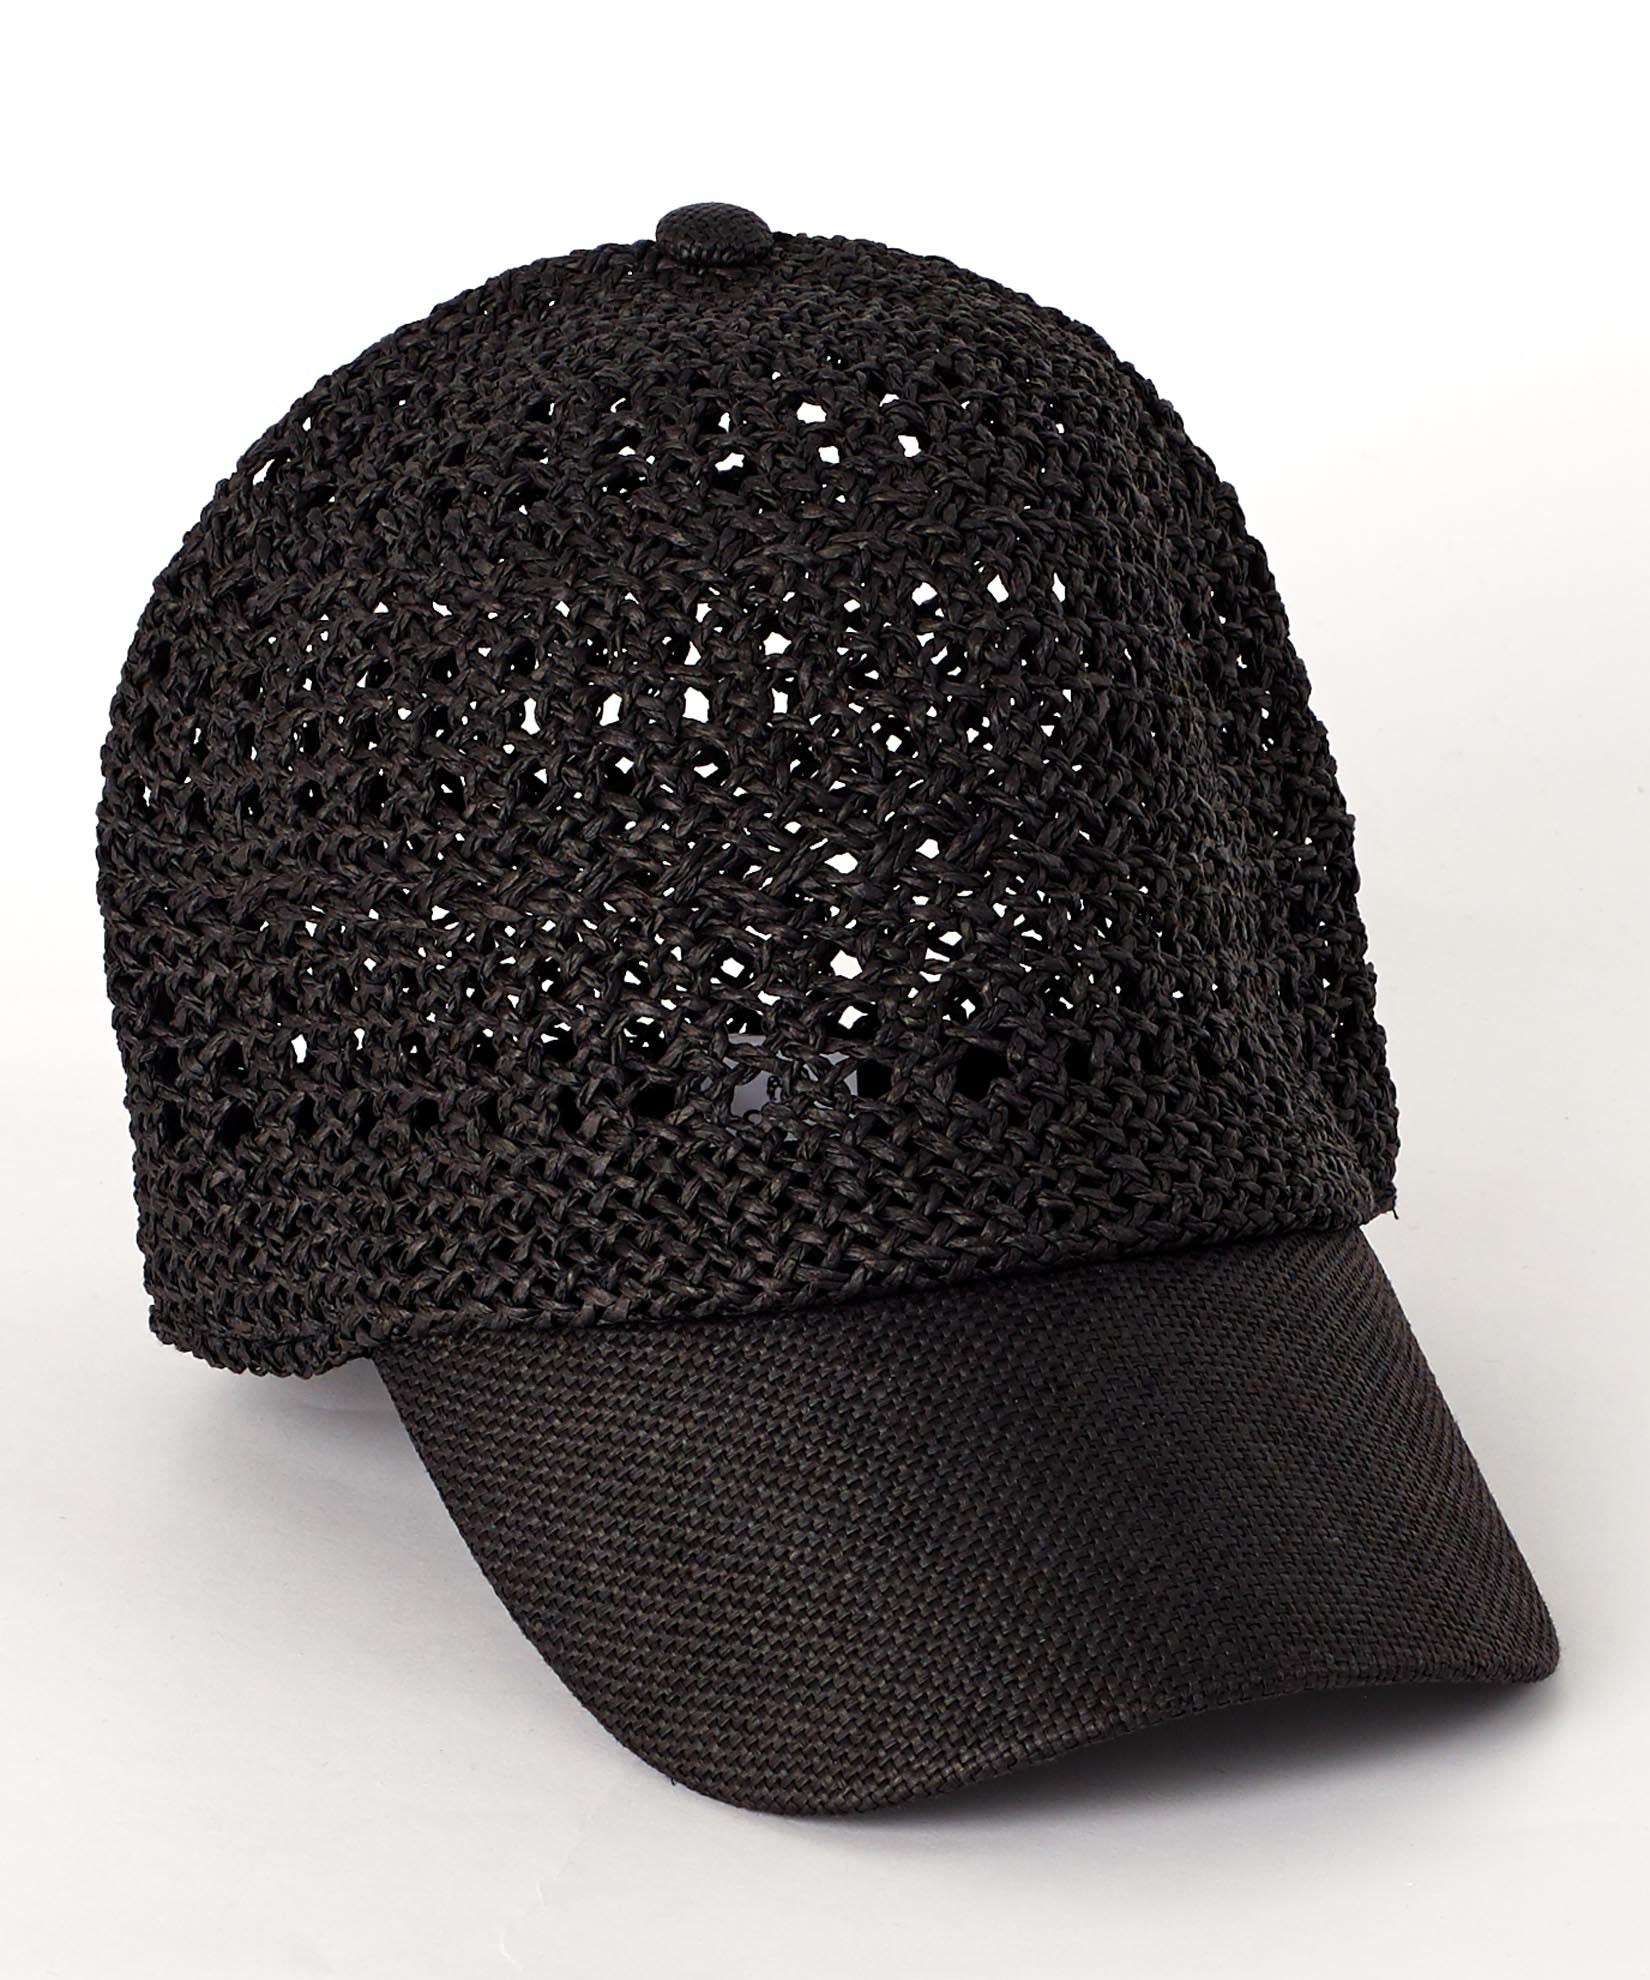 Black - Lilly Packable Baseball Cap